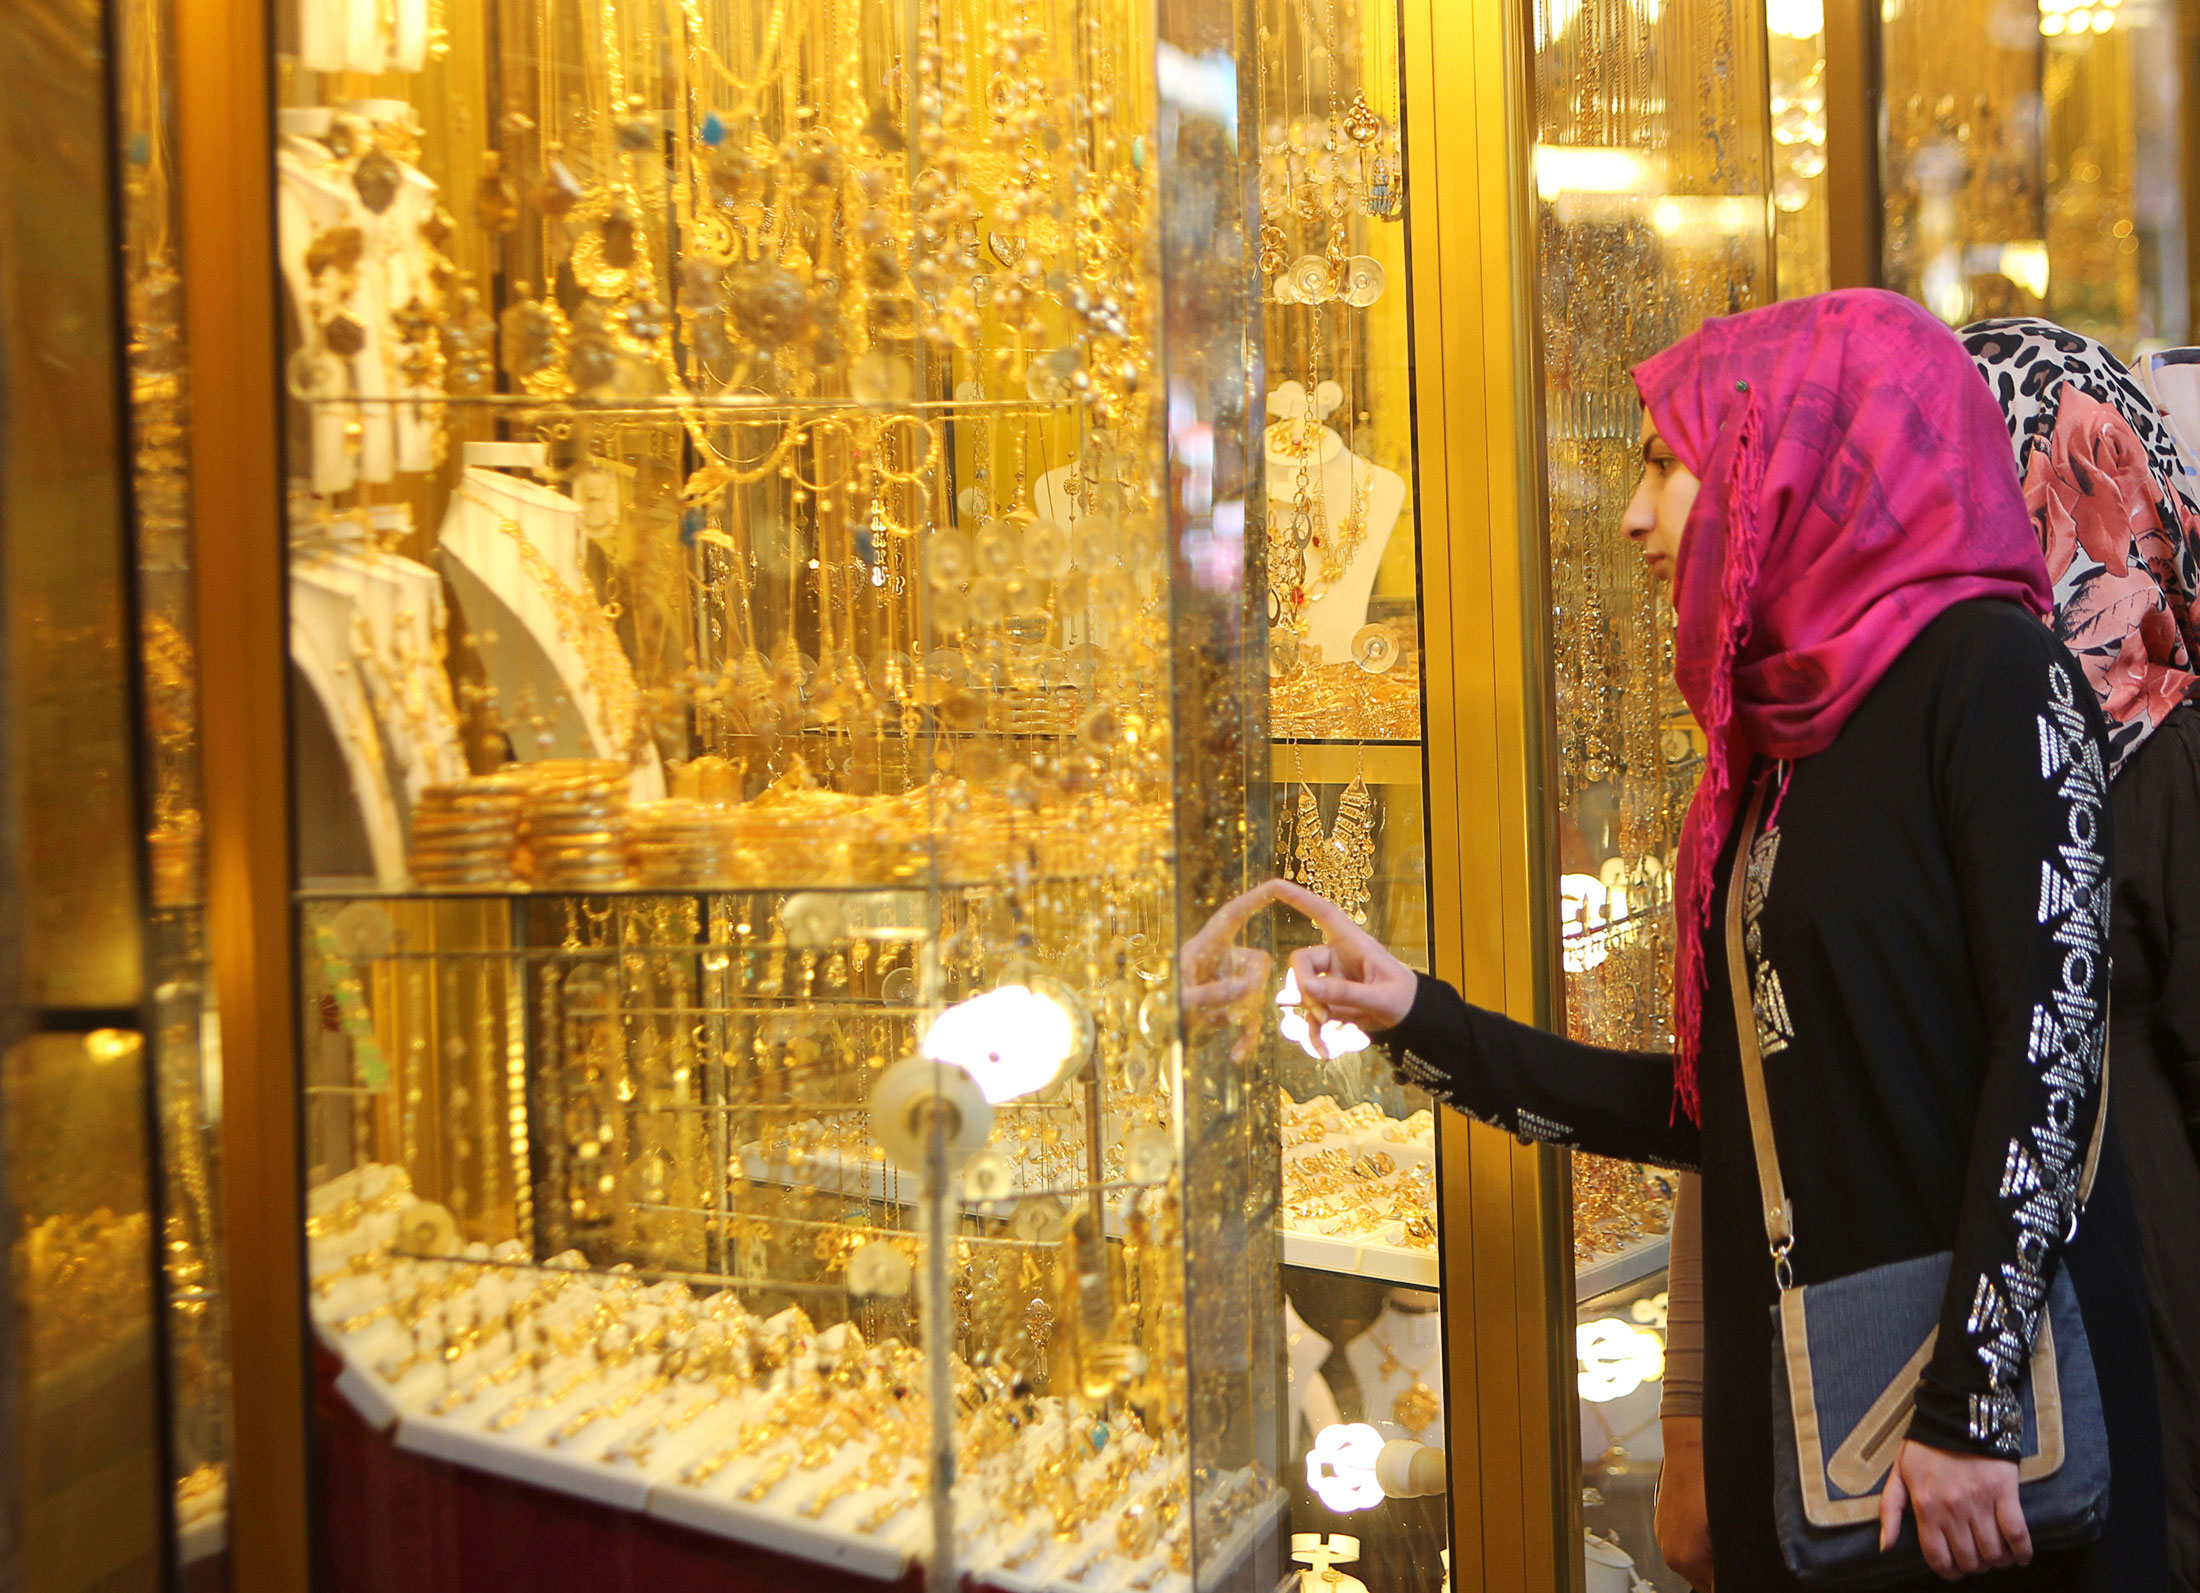 Gold nosedives to hit 2-year low on global meltdown